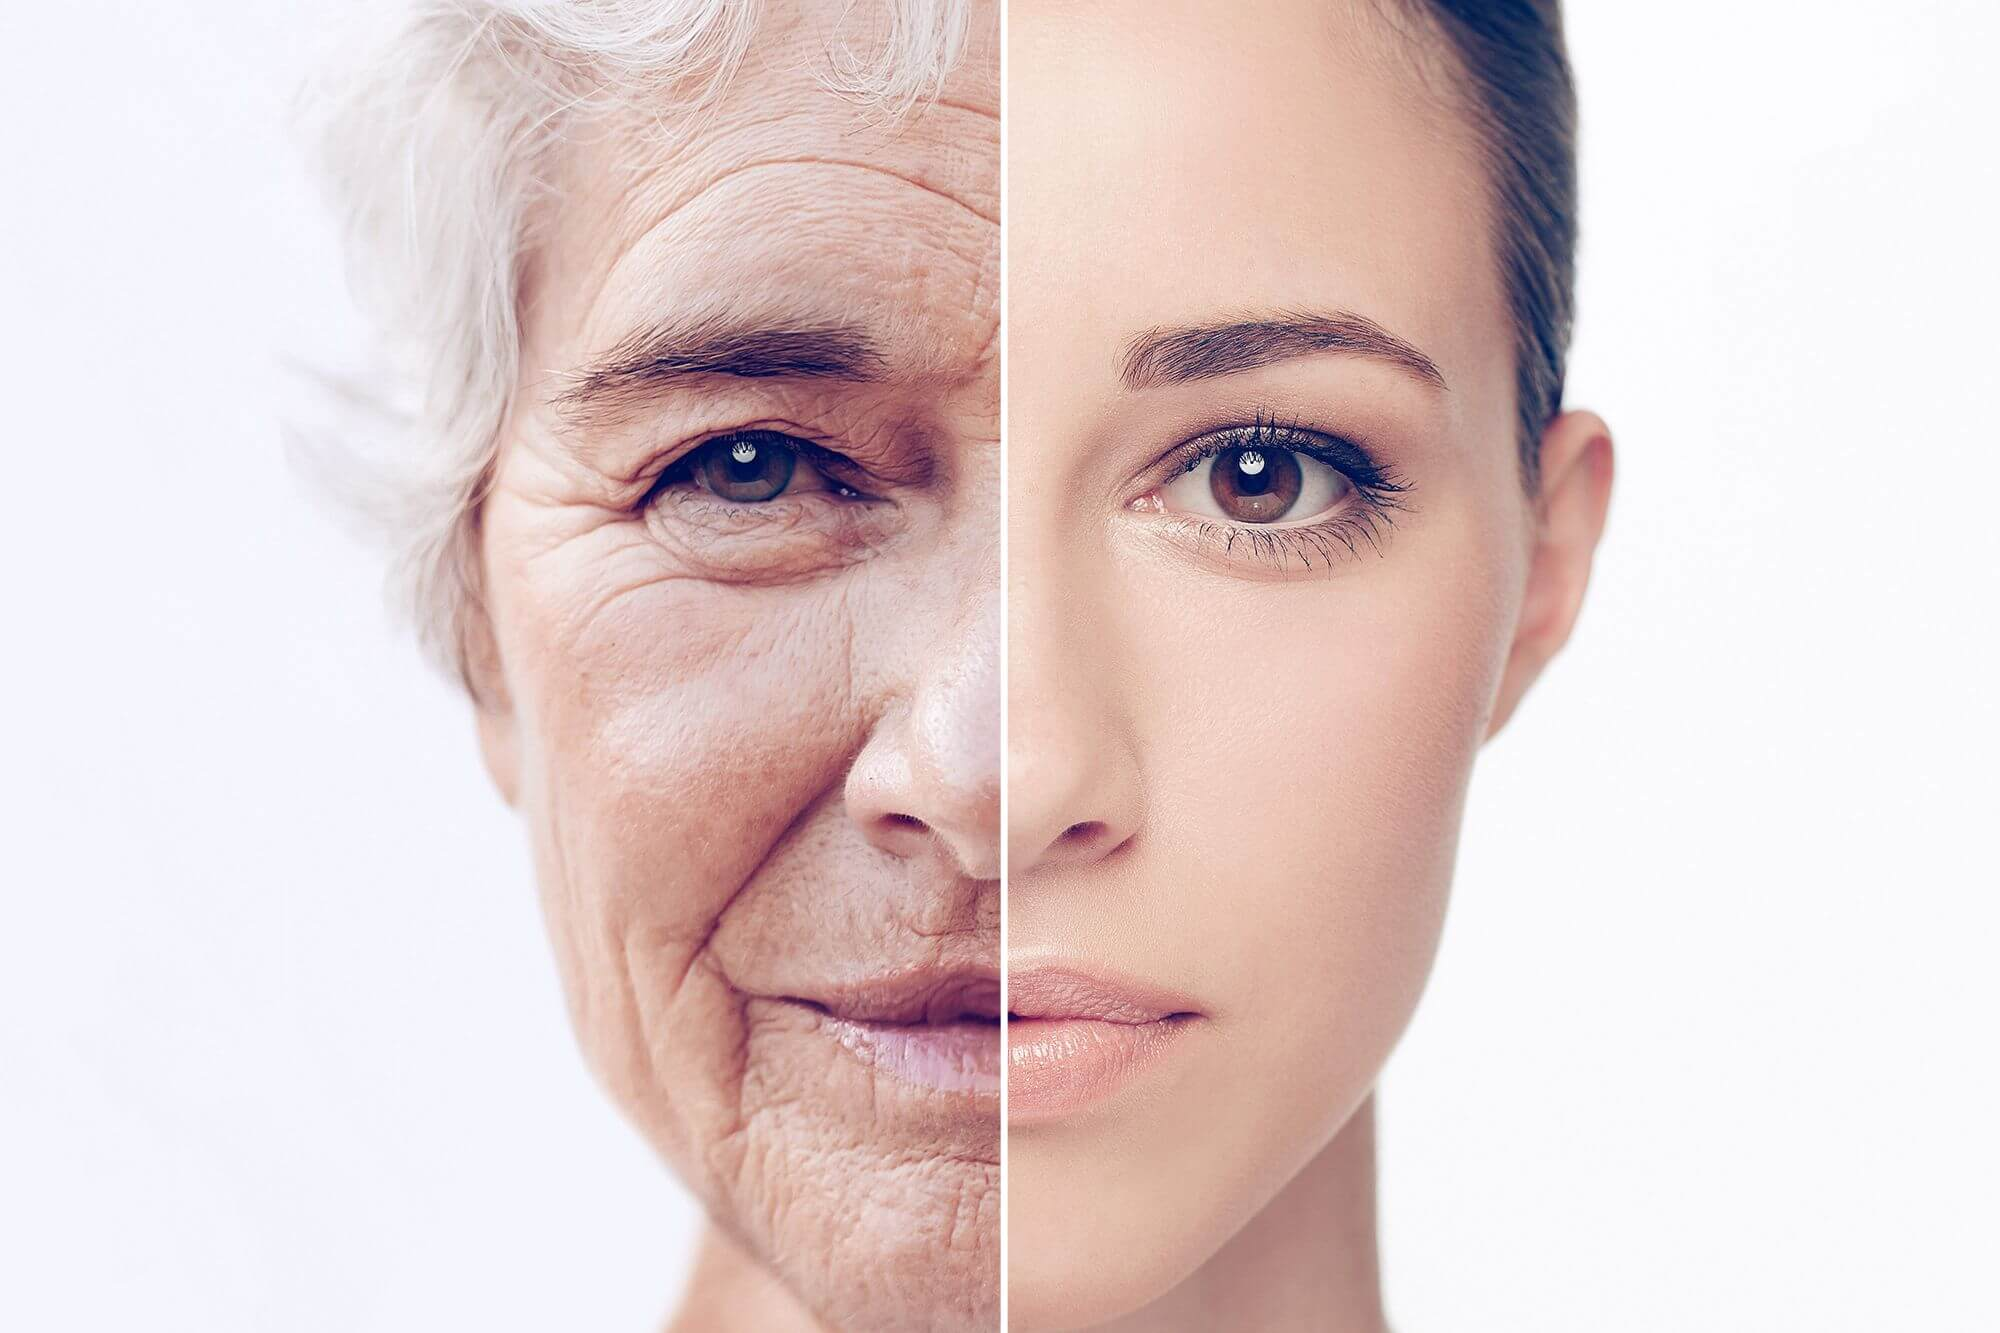 The aging process occurs in three stages: in 34, 60 and 78 years